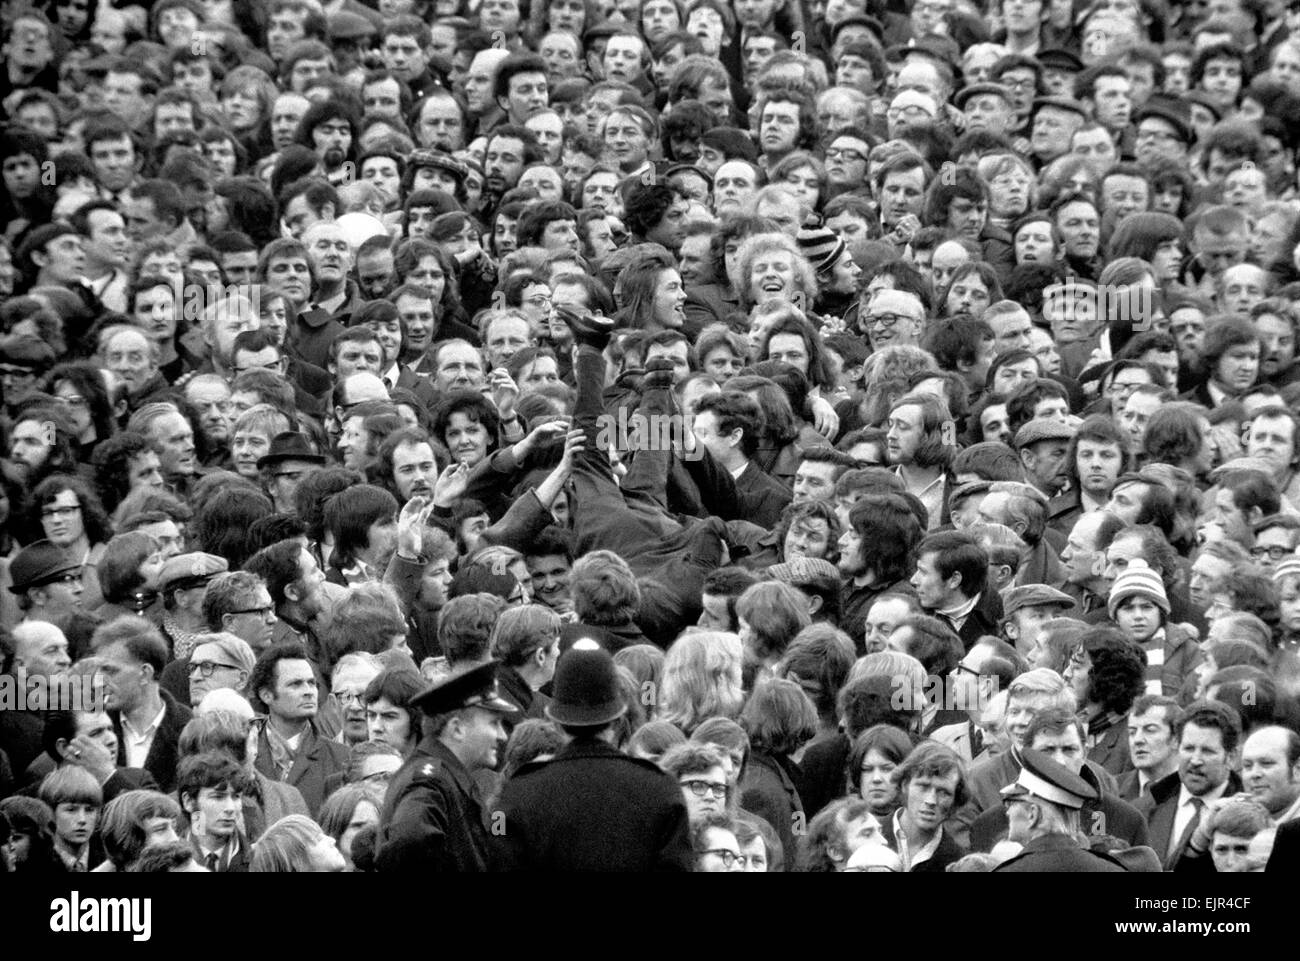 Arsenal v. Derby County F.A. Cup 5th round replay. Barrier gives way at Arsenal. A crush barrier gave way at the - Stock Image